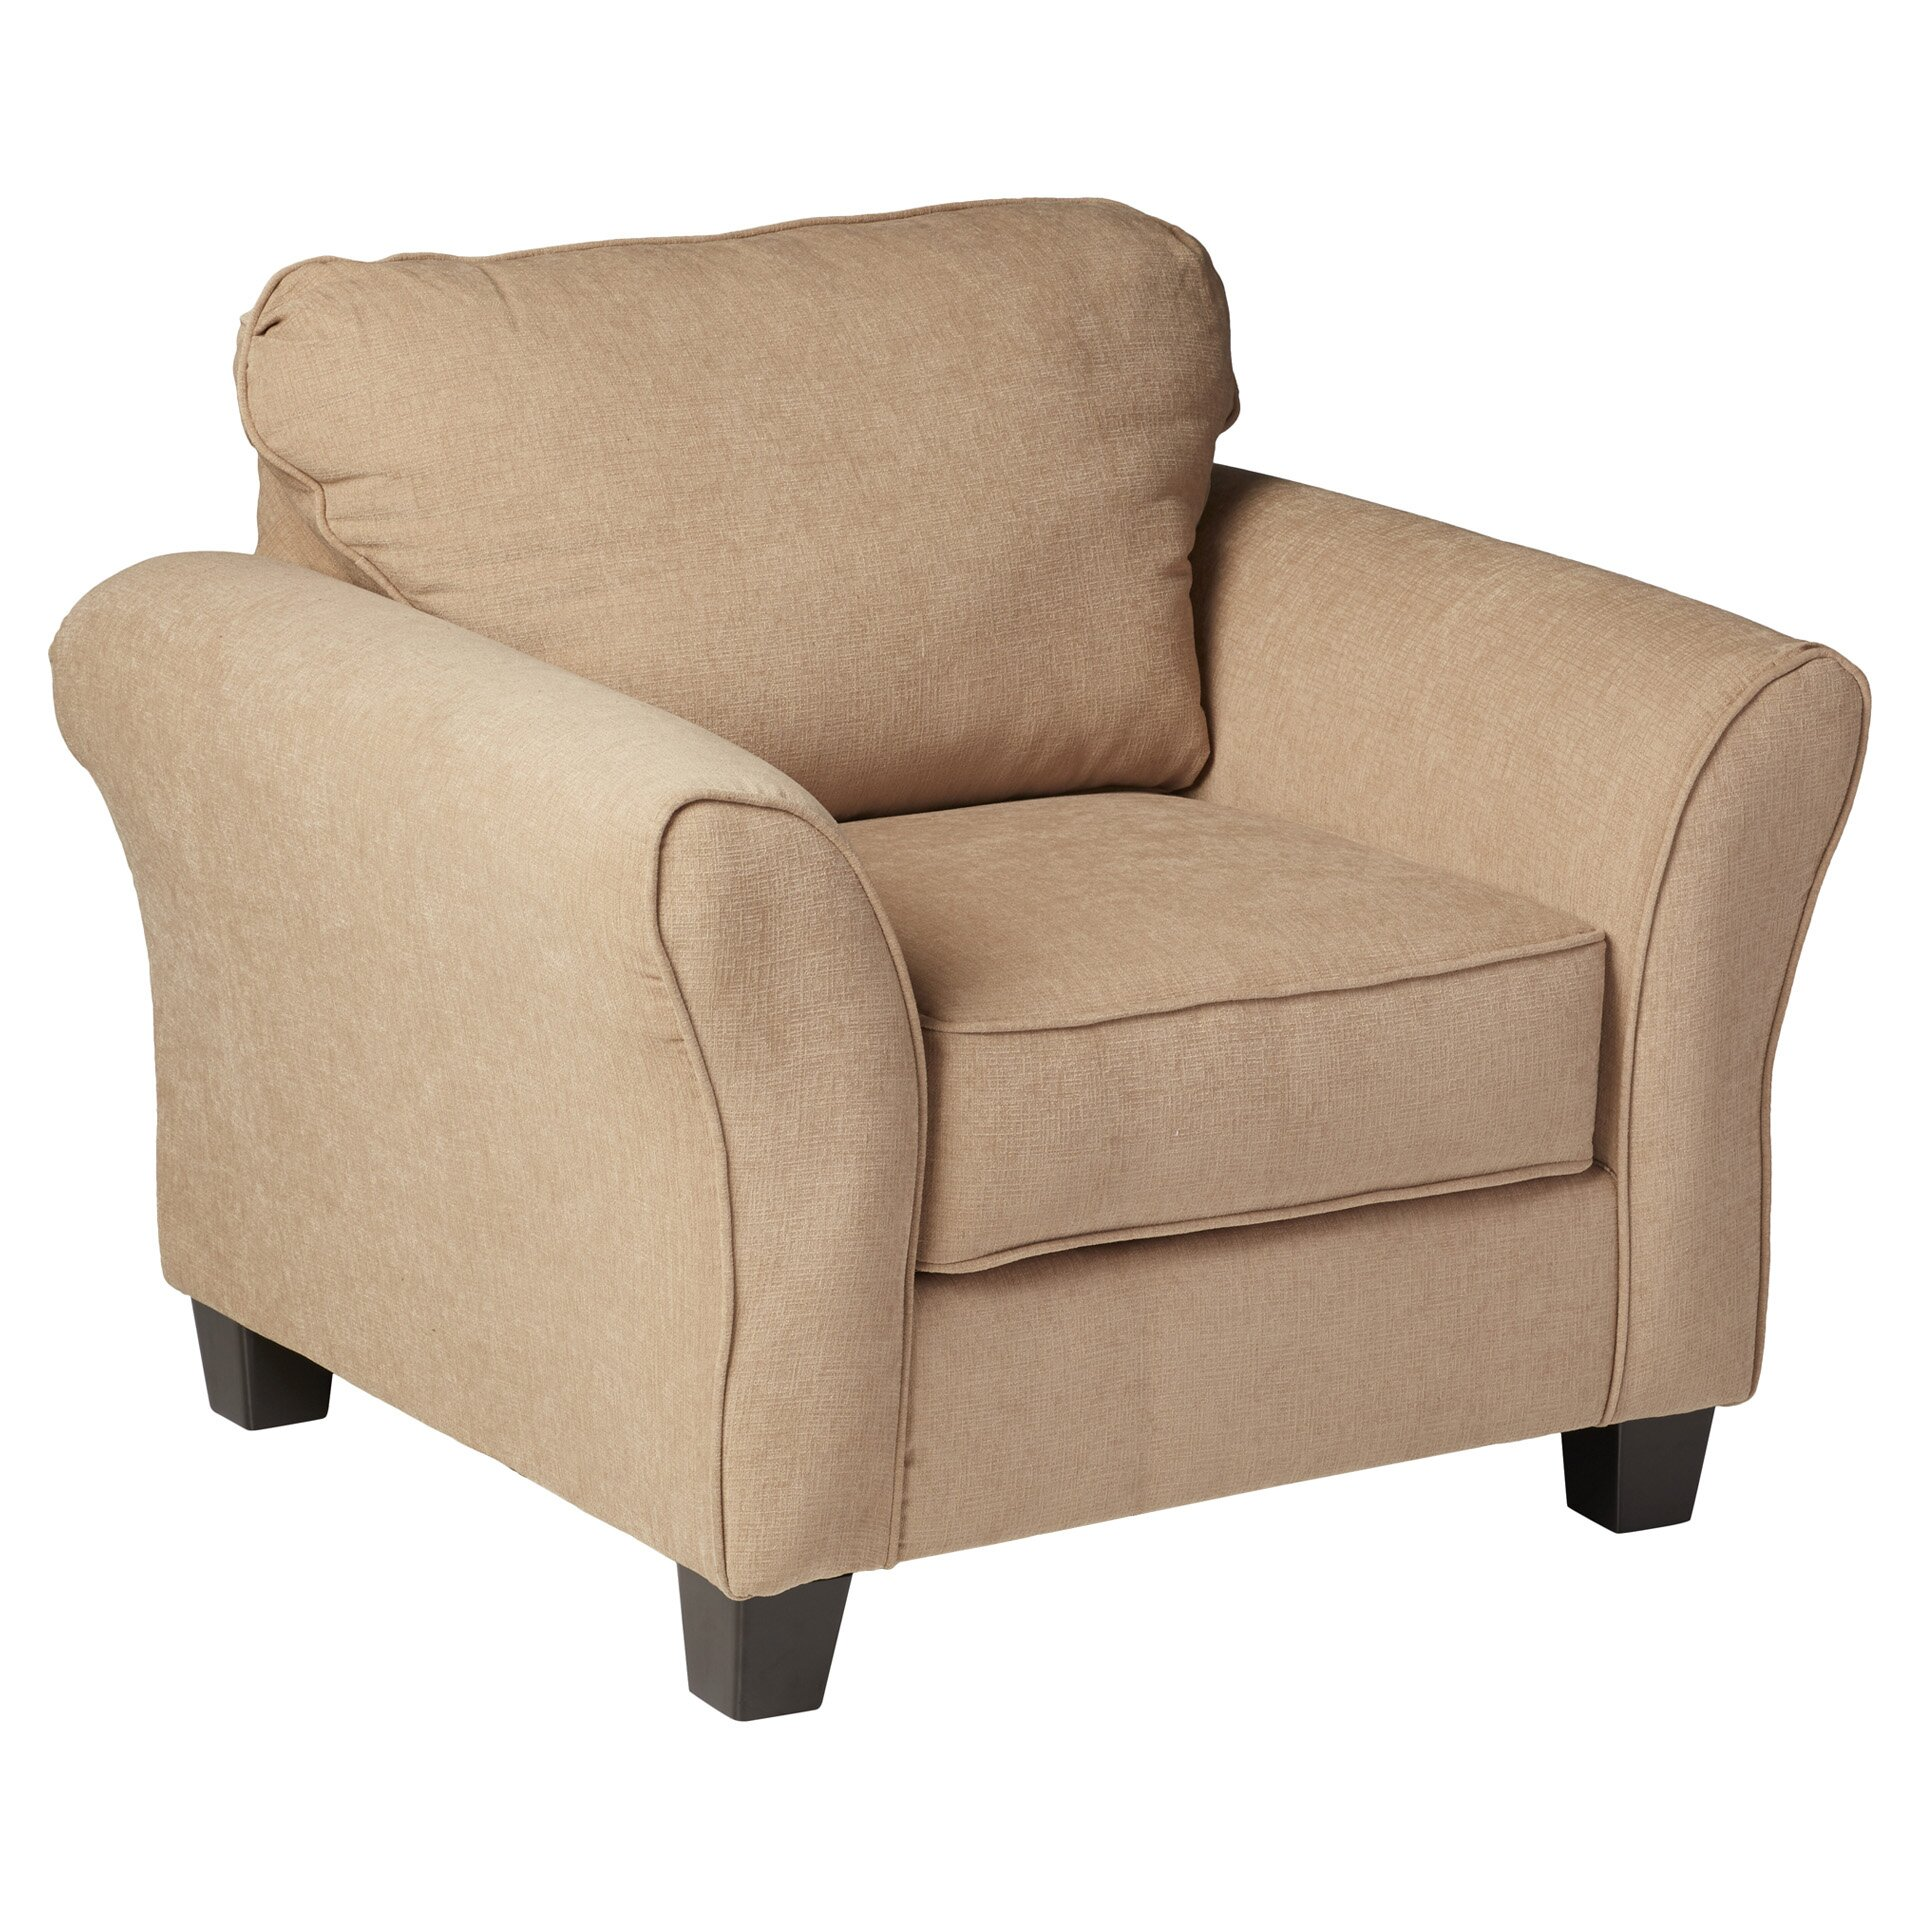 Three Posts Serta Upholstery Franklin Lounge Chair & Reviews